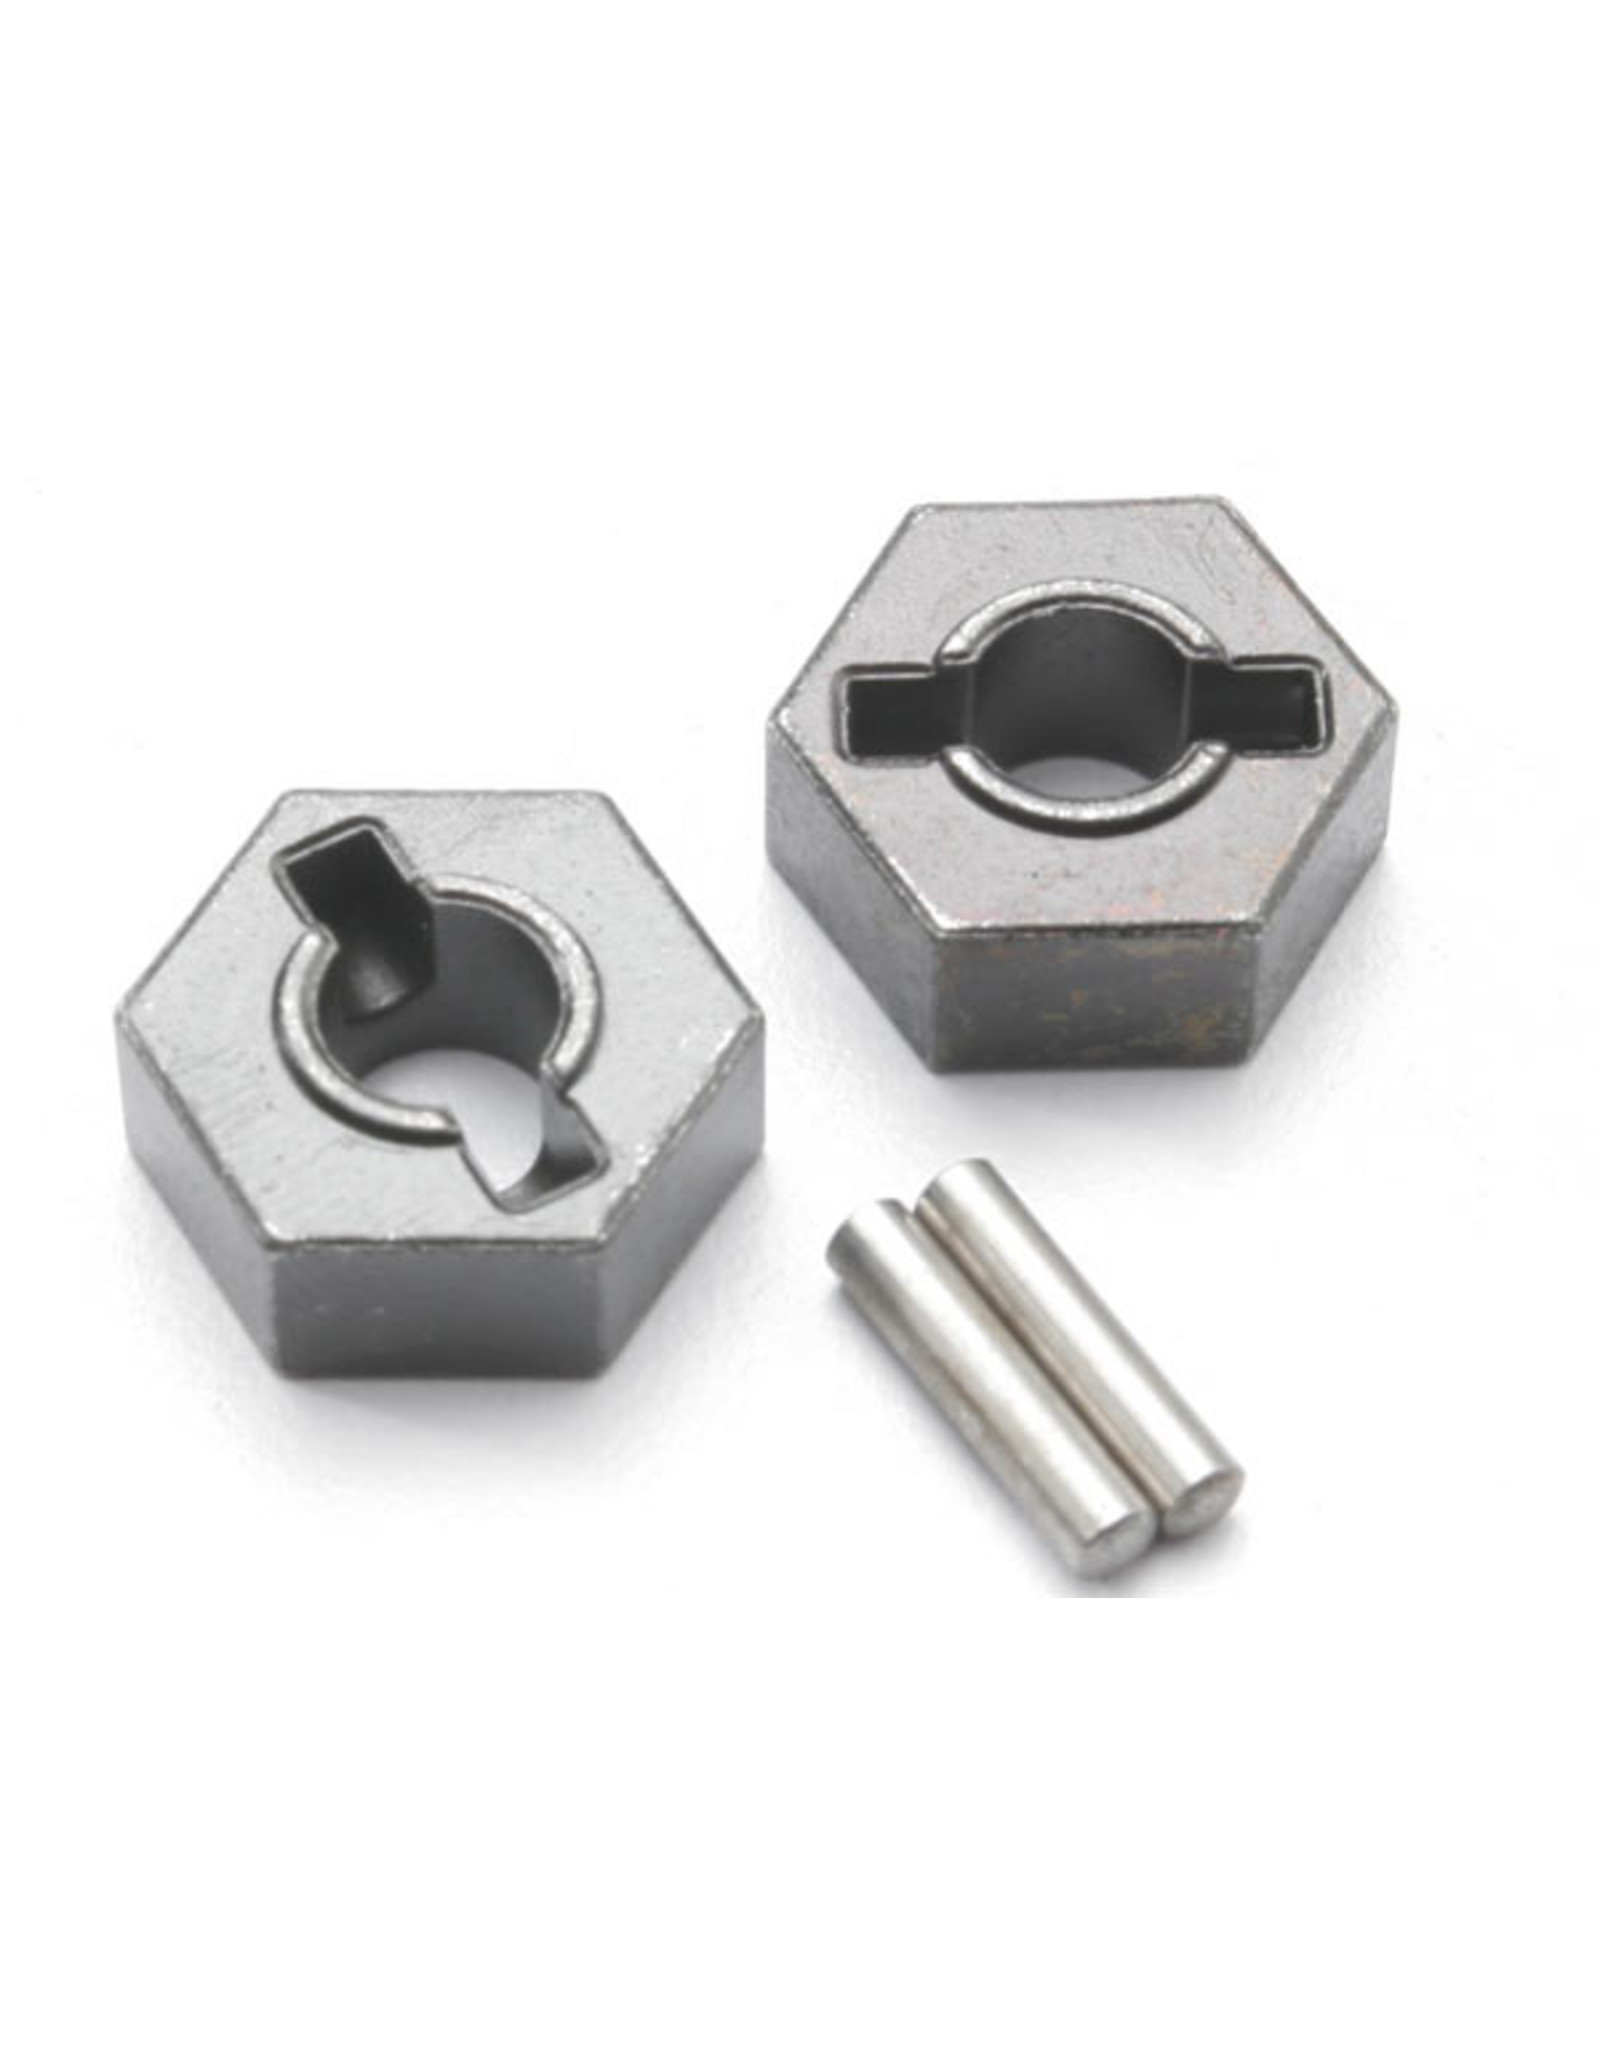 Traxxas 4954R - Steel 14mm Hex Wheel Hubs  with 2.5x14mm Axle Pins (2)